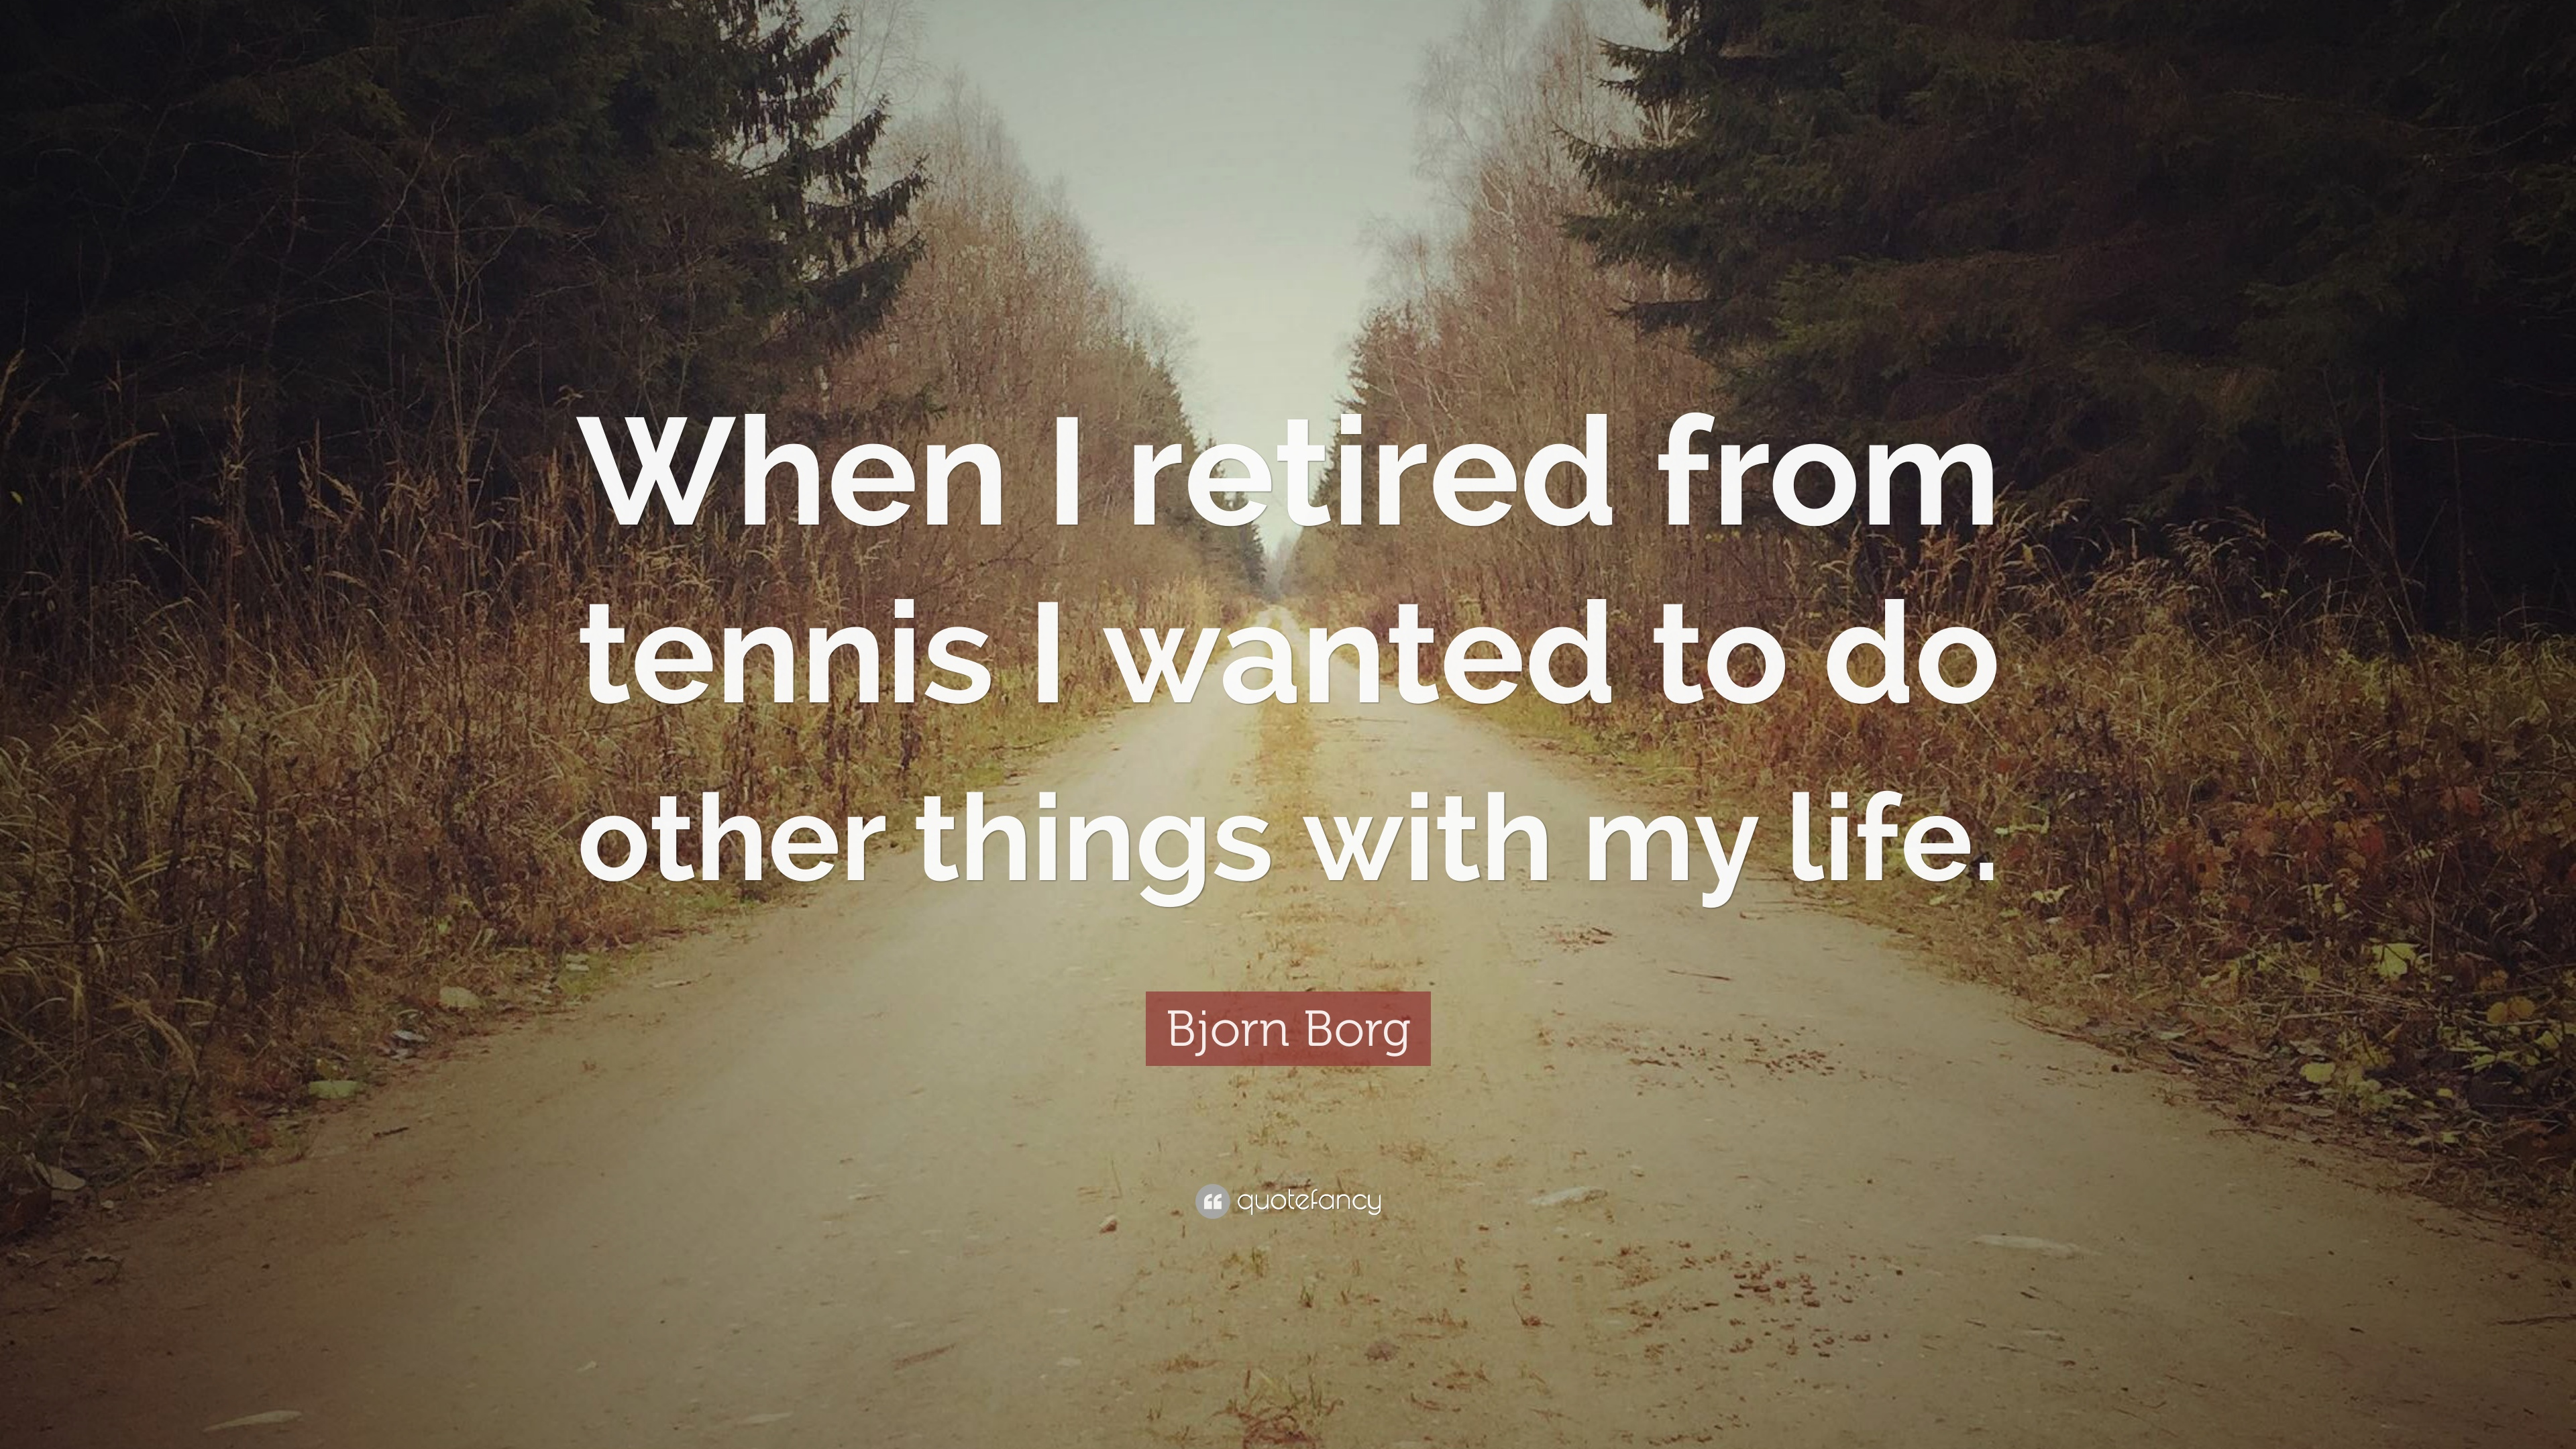 Bjorn borg quote when i retired from tennis i wanted to - We are the borg quote ...